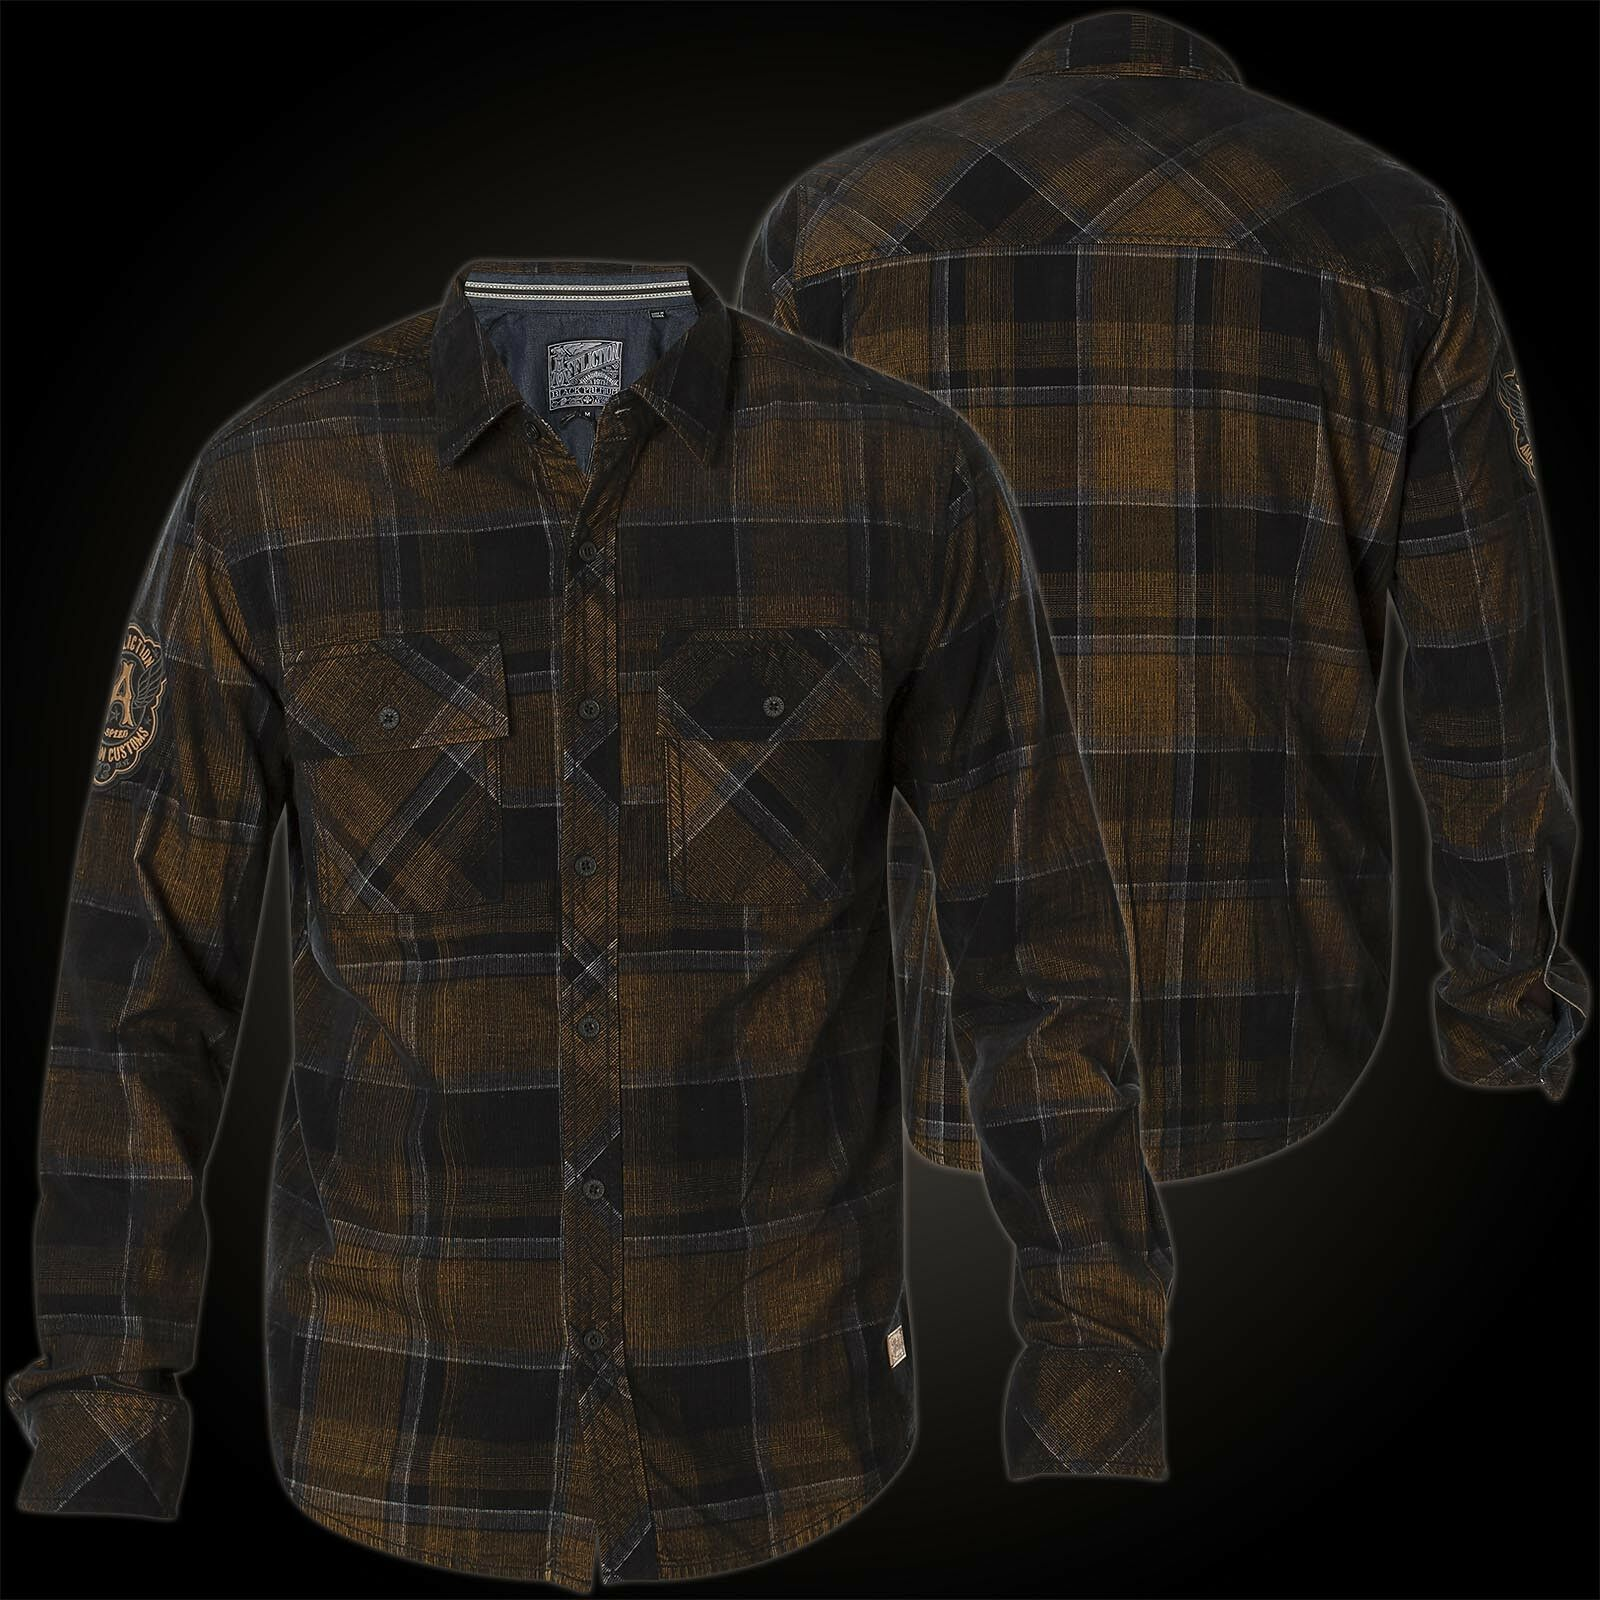 Affliction Camicia Copper Mountain Marroneee nero Camicie